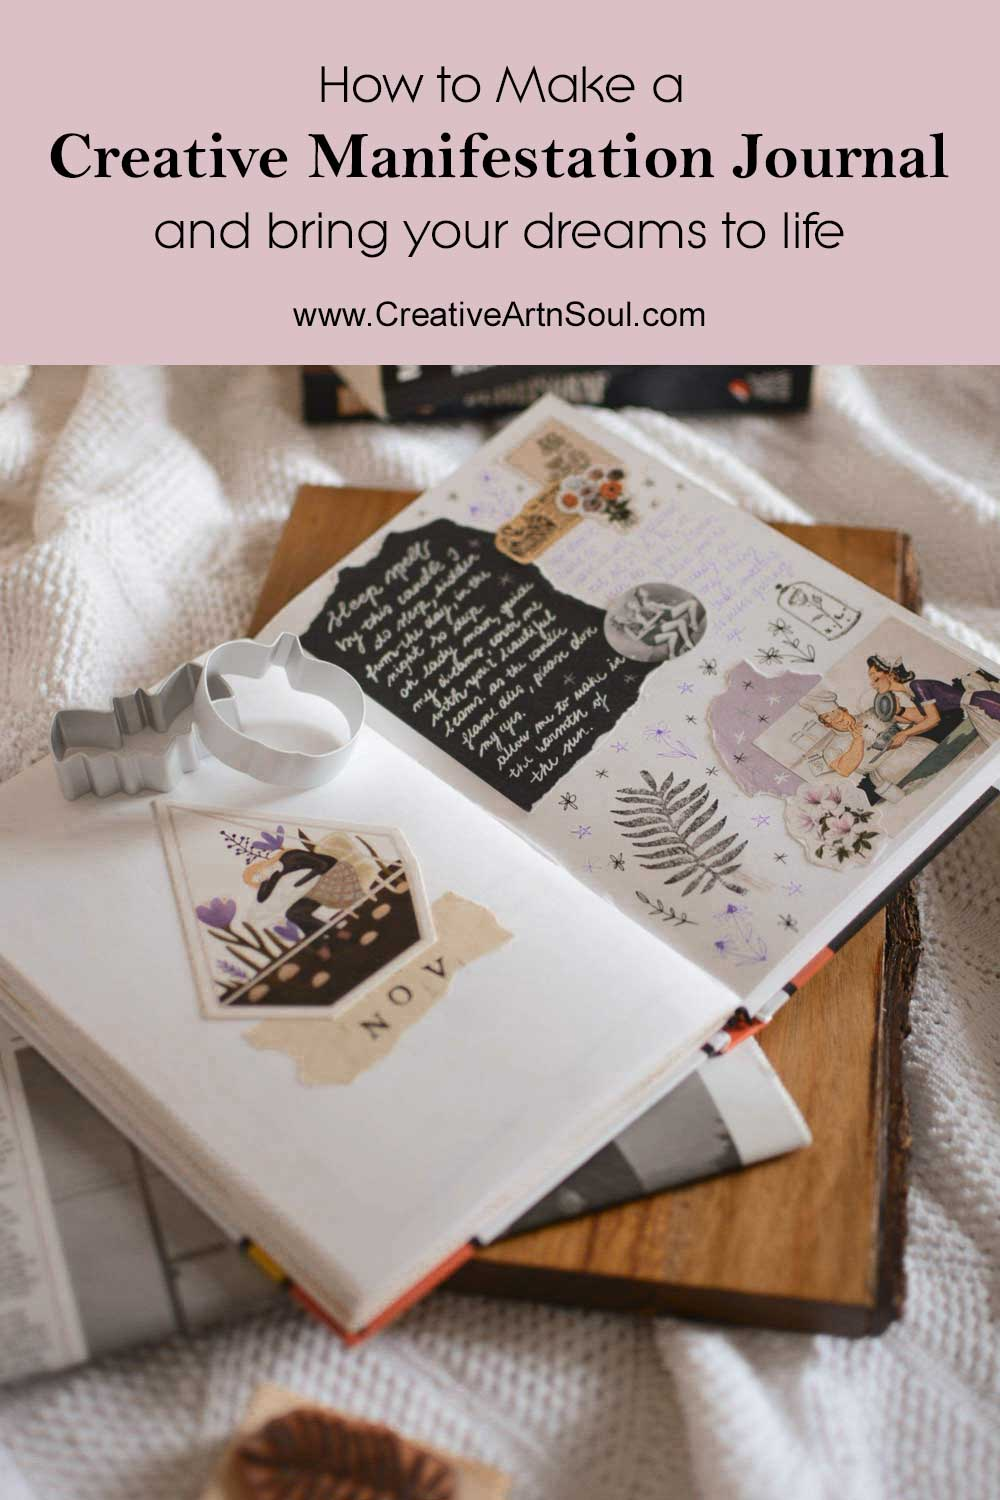 How to Make a Creative Manifestation Journal and Bring Your Dreams to Life